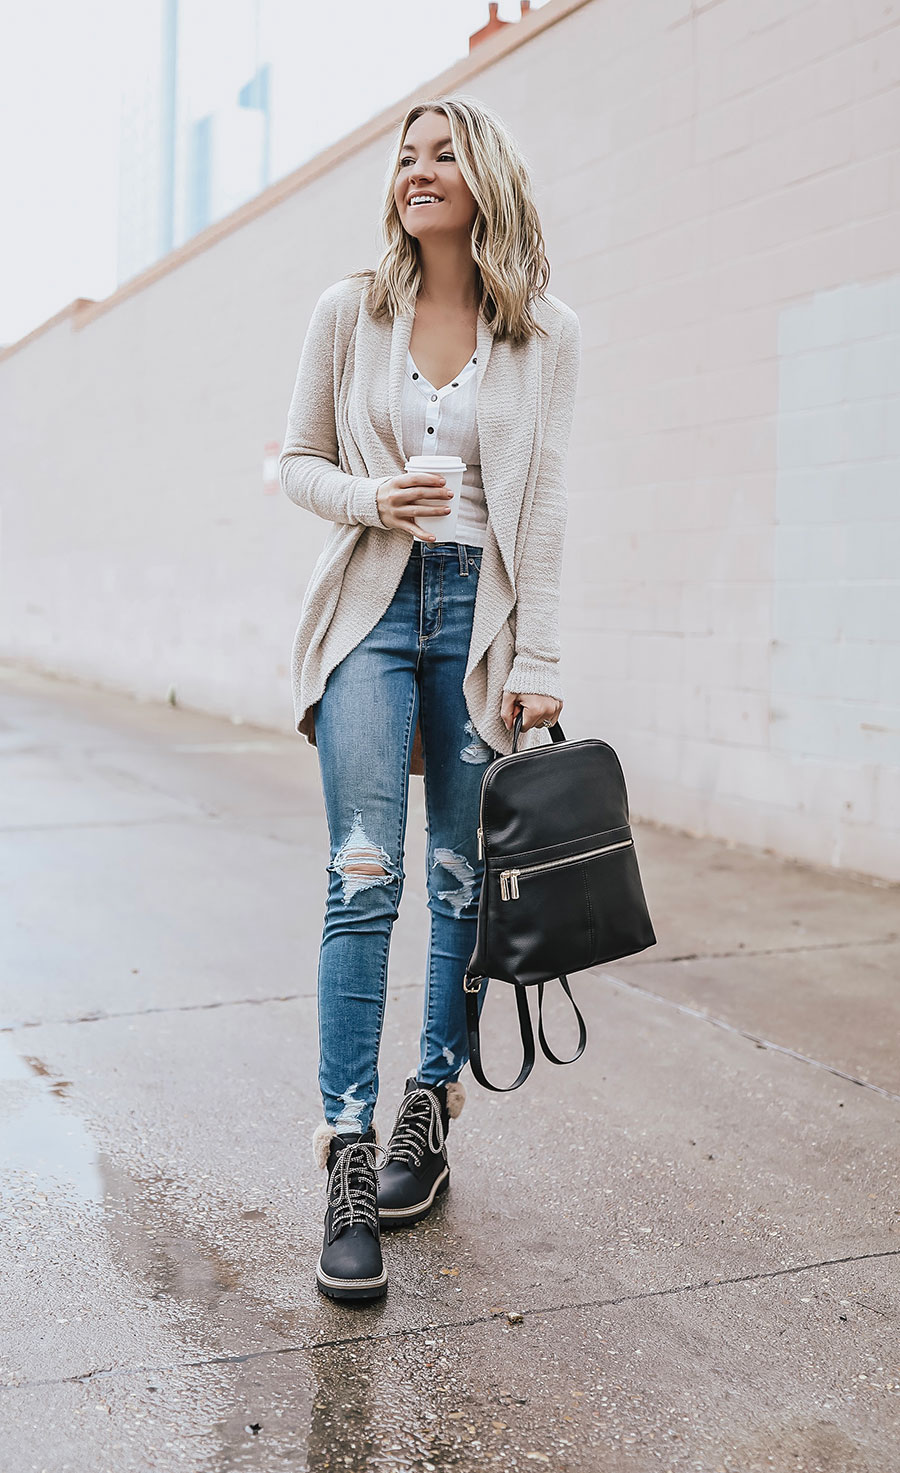 2019 Nordstrom Under $50 Try On